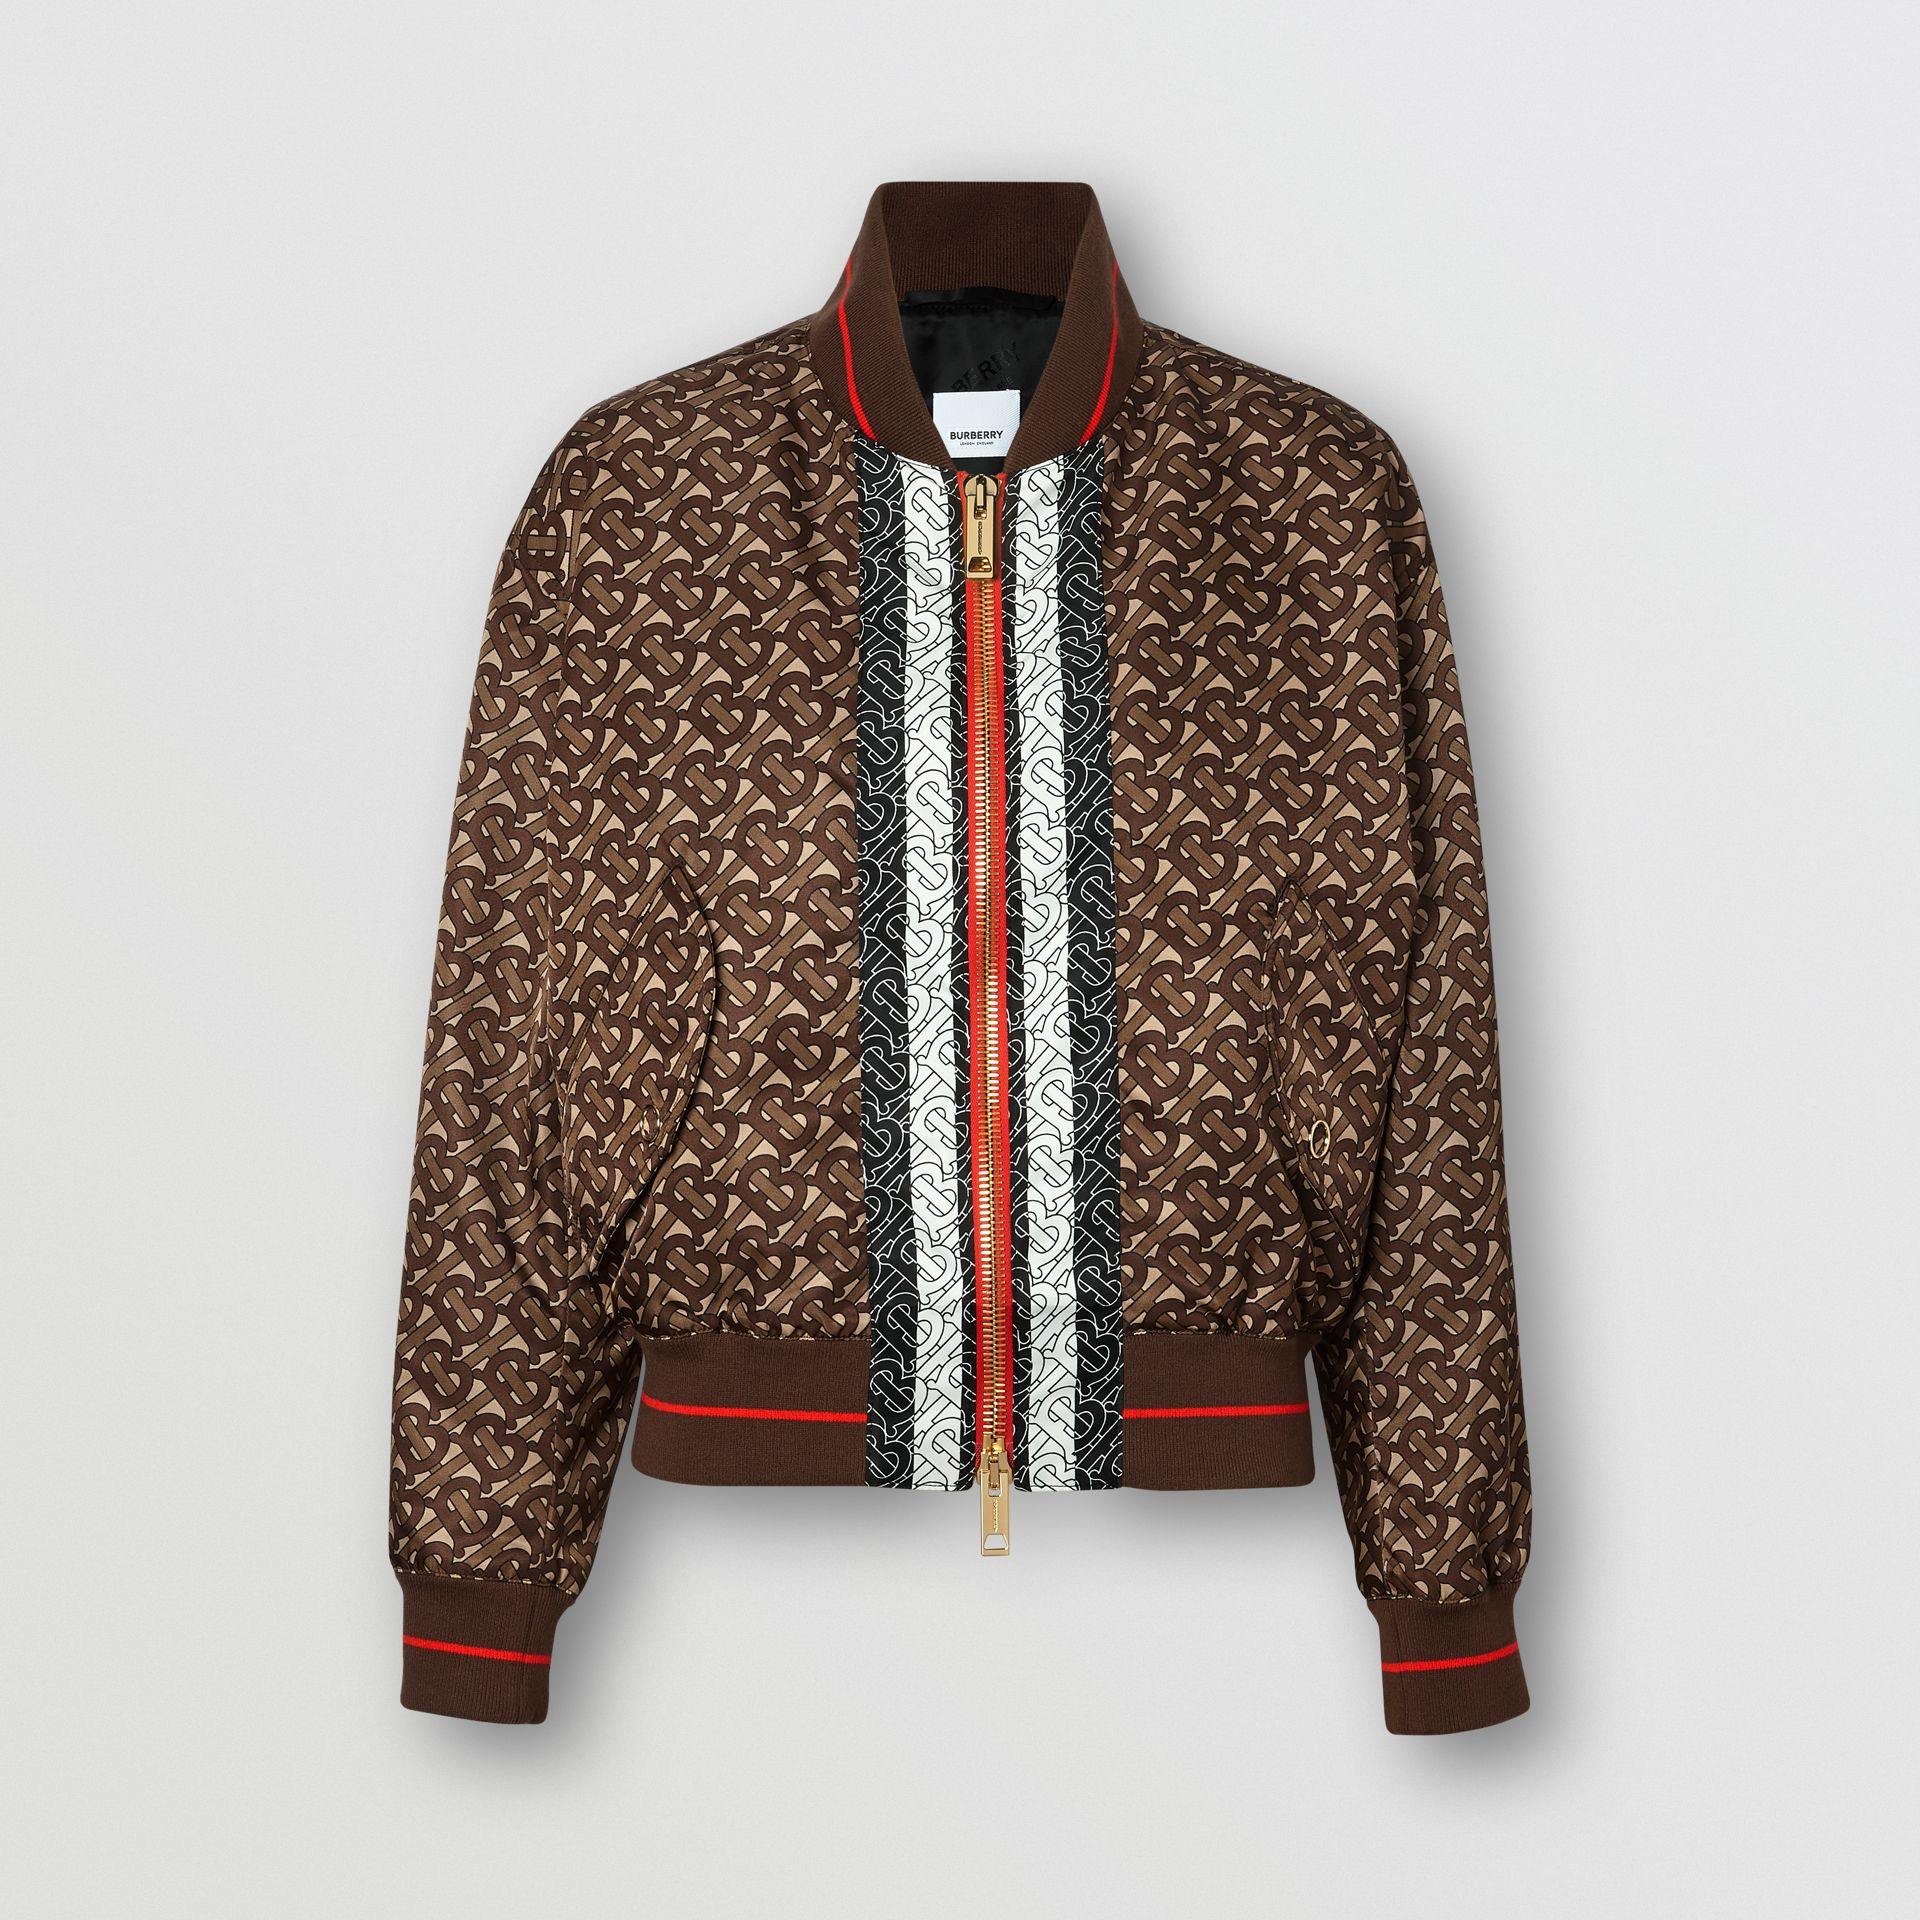 Monogram Stripe Print Nylon Bomber Jacket in Bridle Brown - Women | Burberry - gallery image 3